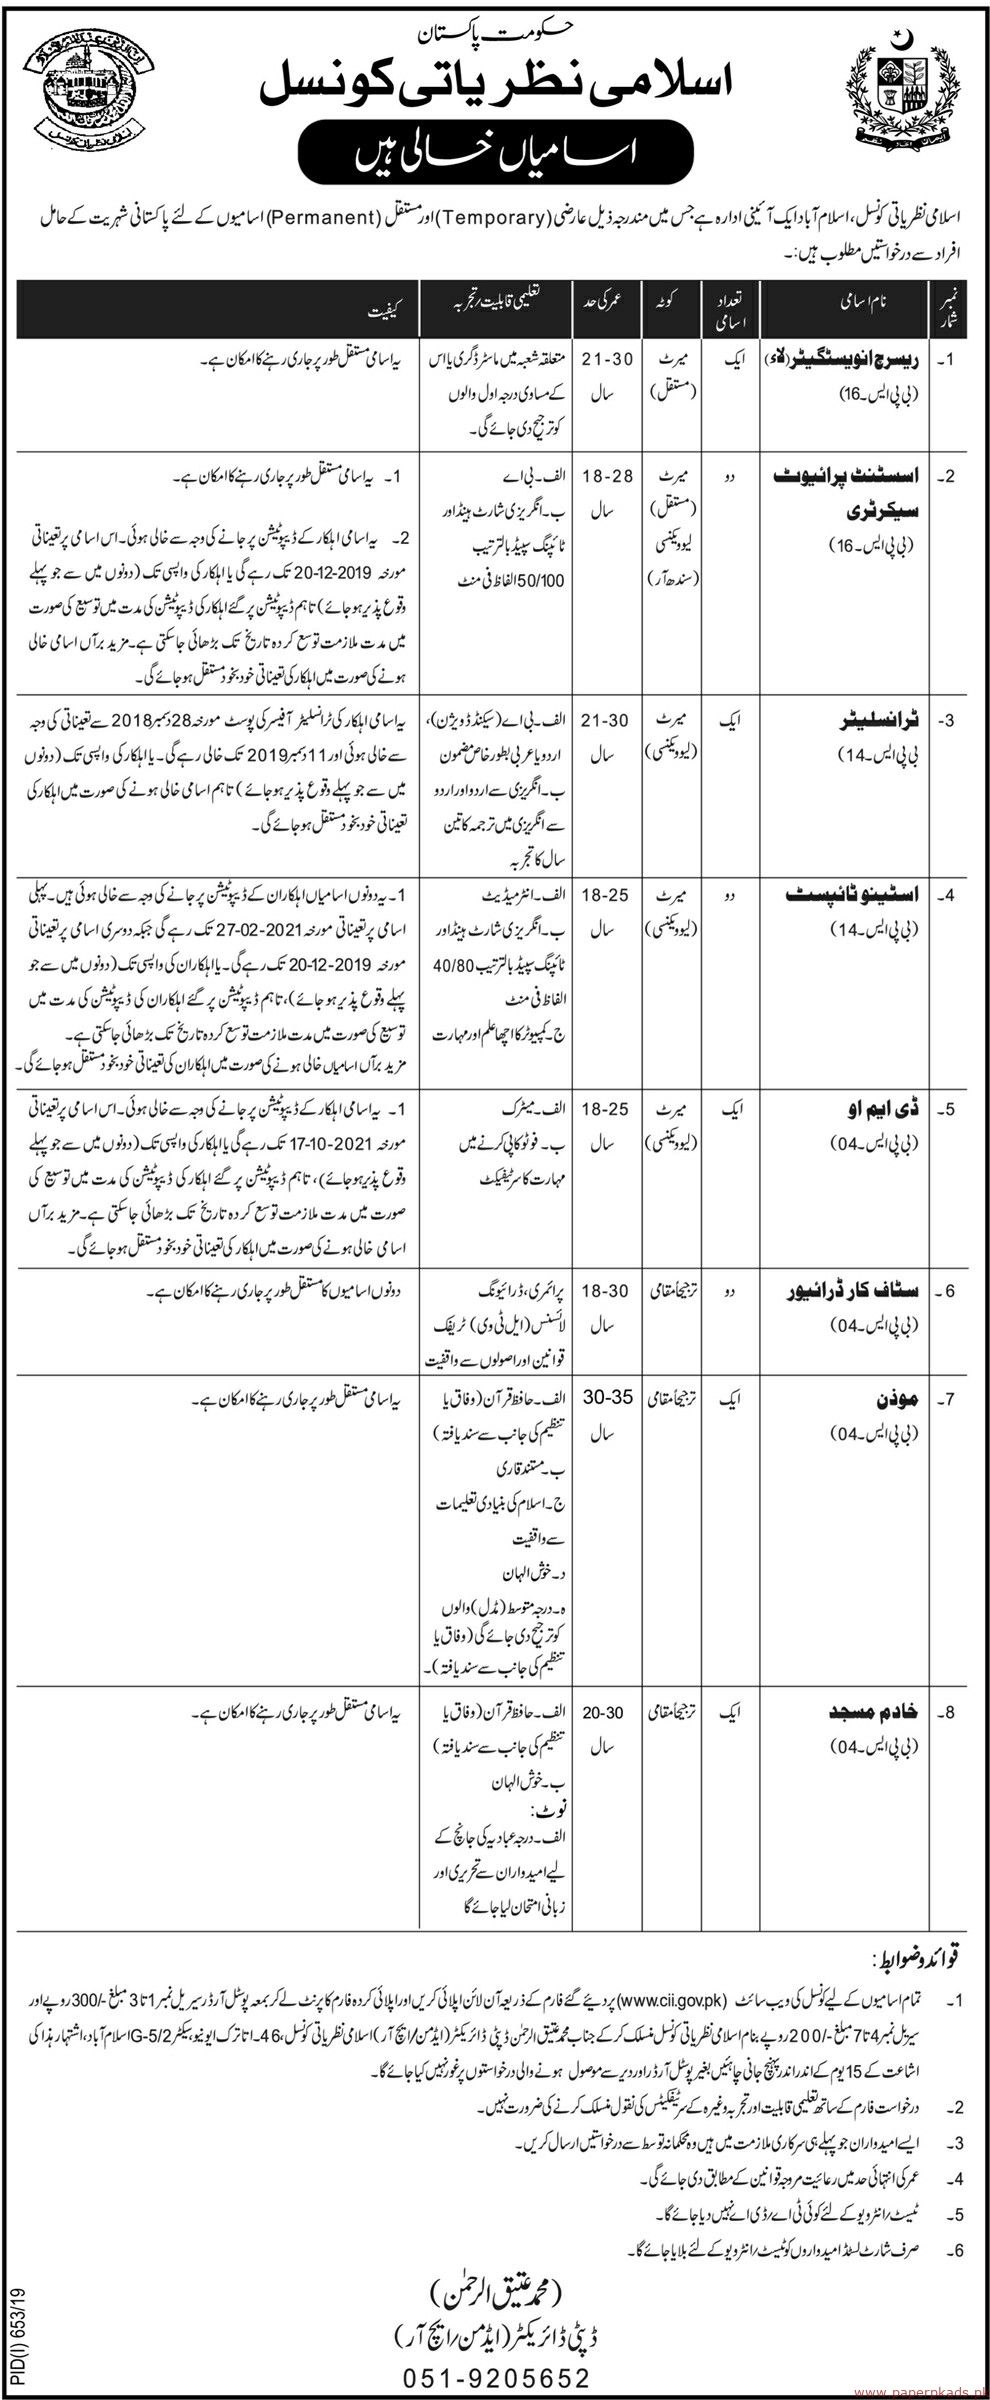 Council of Islamic Ideology Jobs 2019 Latest